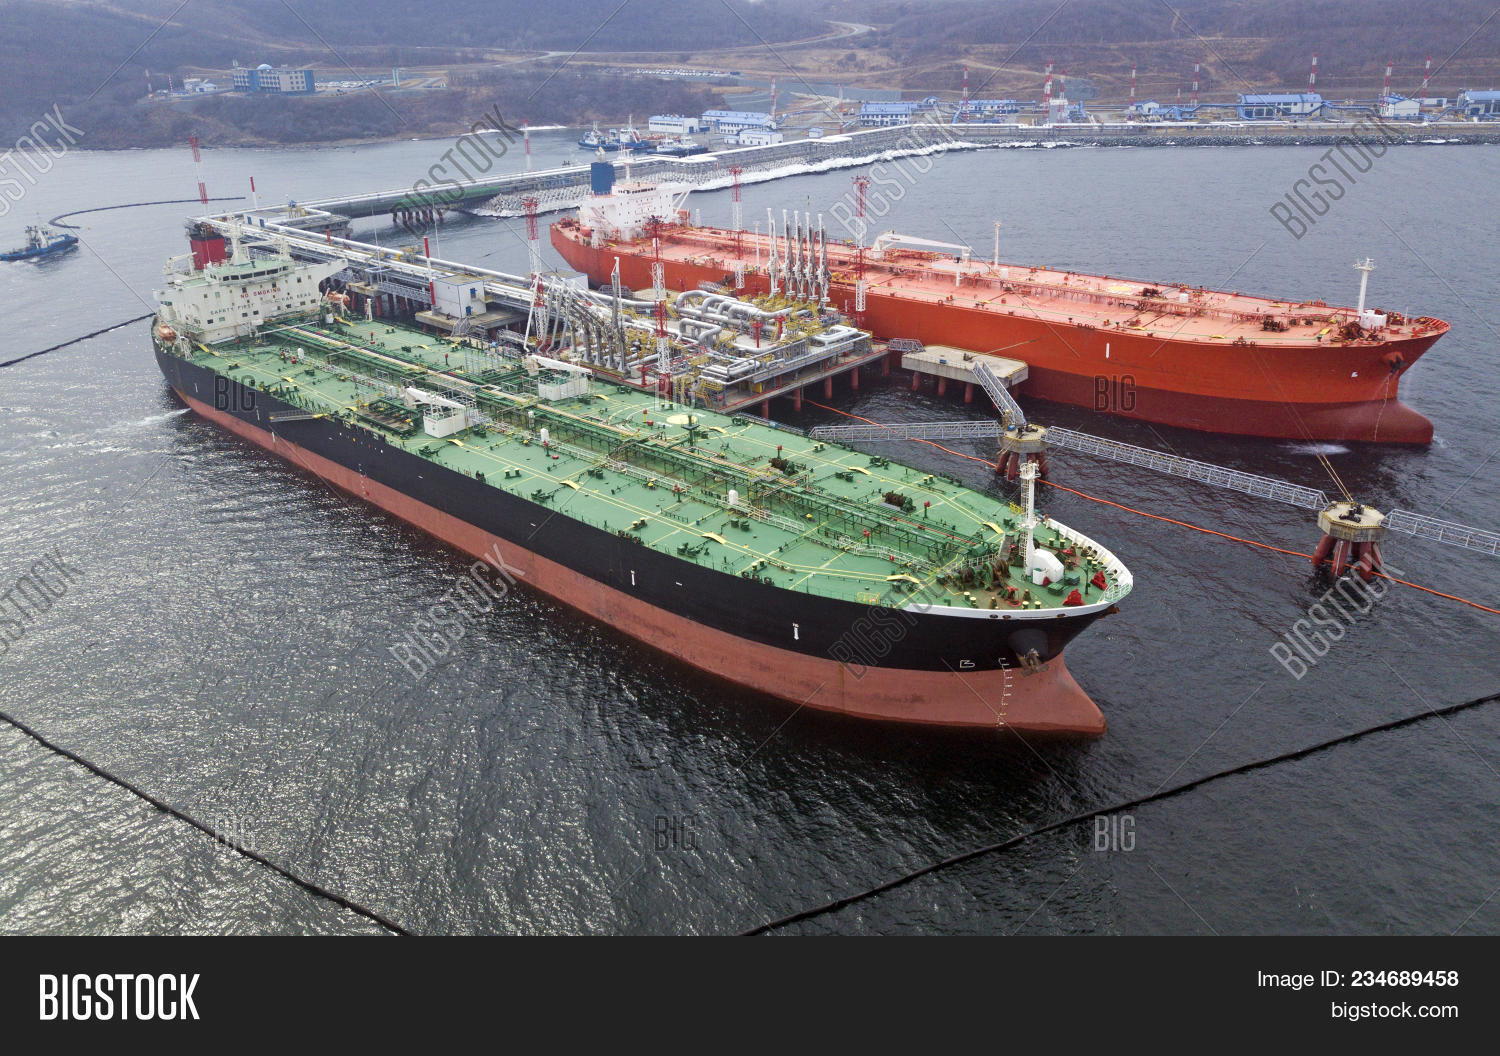 aerialview,anchor,background,boat,bulk,business,cargo,carrier,channel,chemical,commercial,construction,container,crude,energy,environment,freight,fuel,gas,gasoline,green,harbor,heavy,industrial,industry,loading,marine,navigation,nobody,ocean,offshore,oil,petrochemical,petroleum,plant,port,power,rig,sea,ship,shipping,storage,tank,tanker,trade,transport,transportation,vessel,water